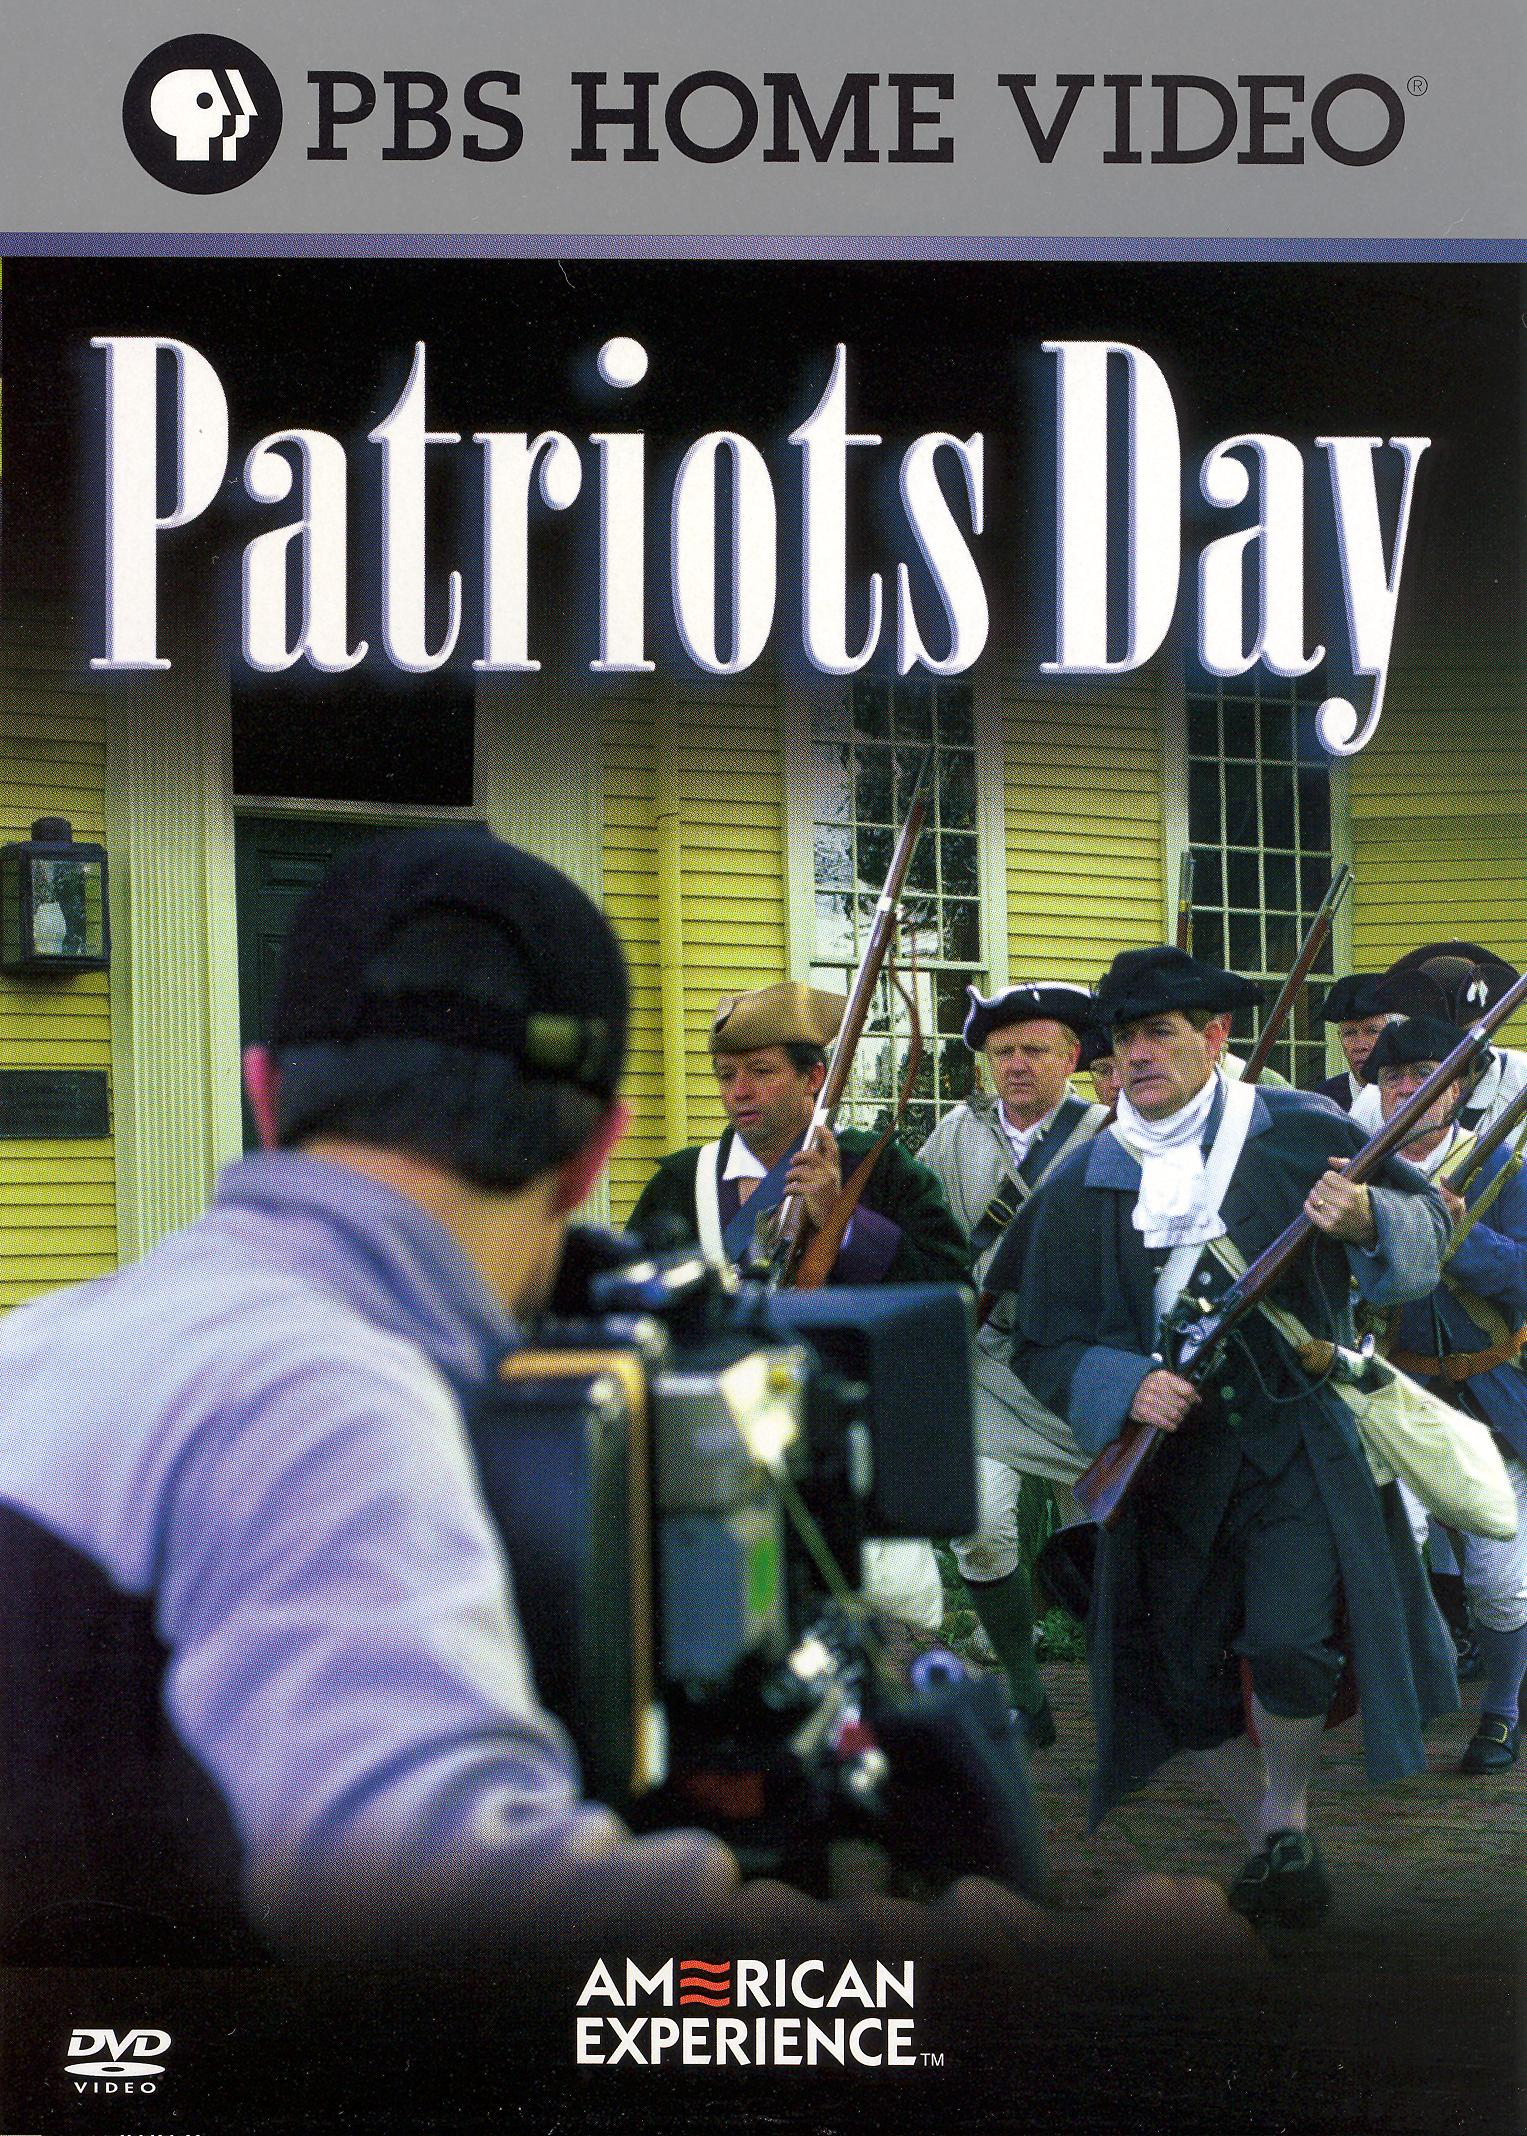 American Experience: Patriots Day